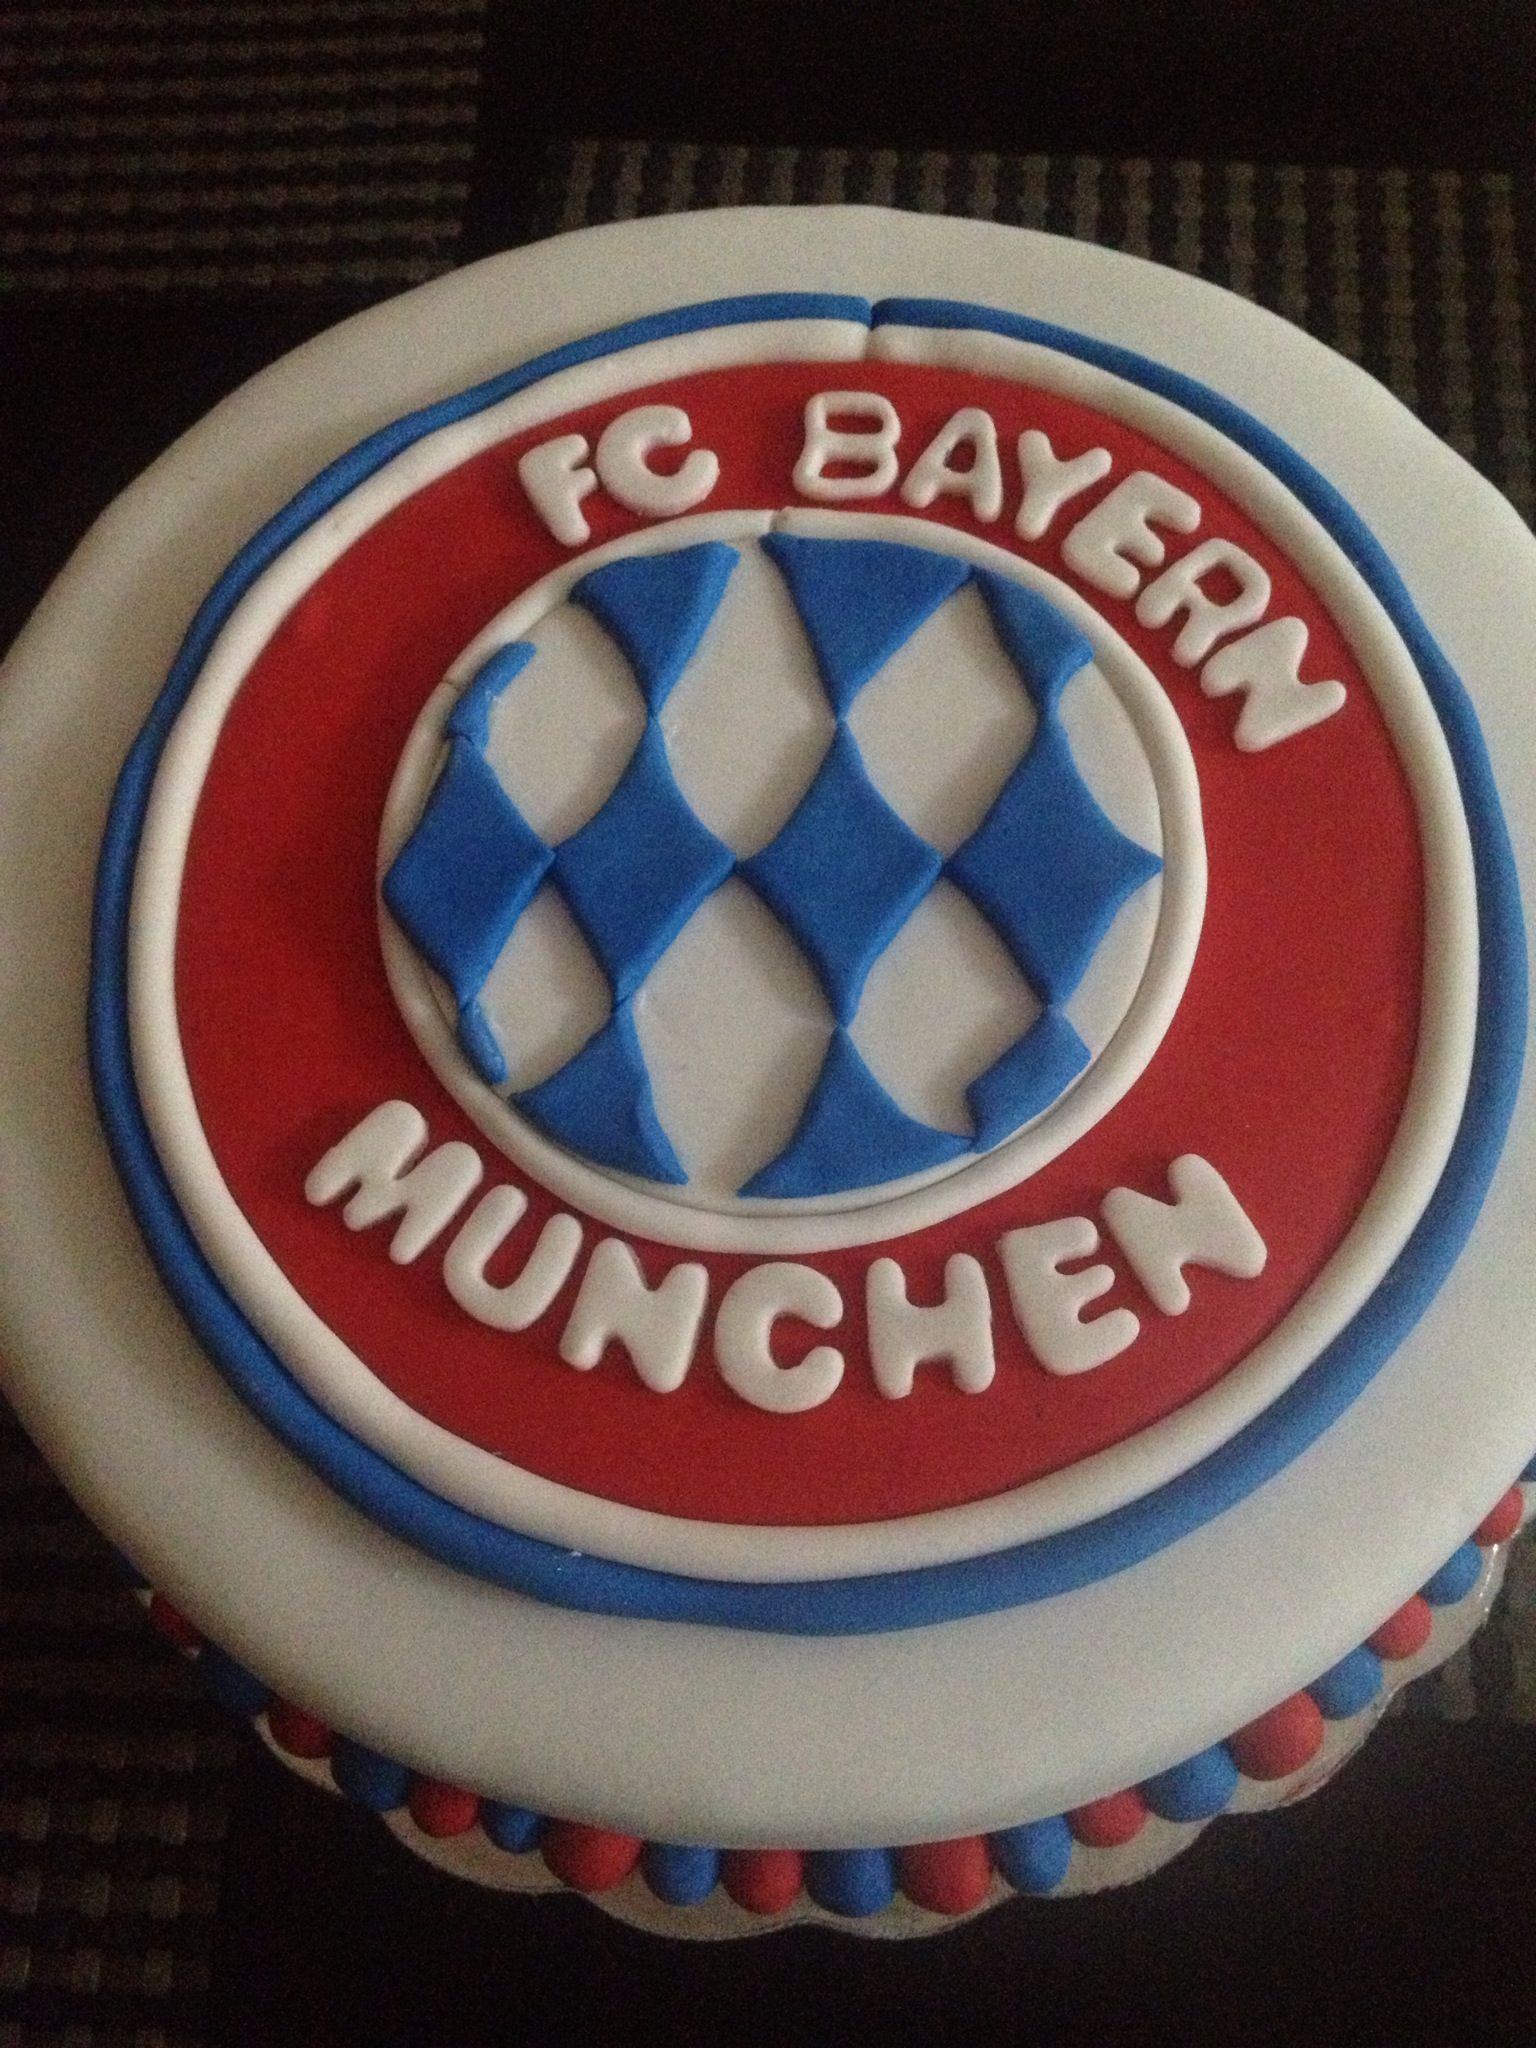 Bayern Munchen Cake made for my son  Cakes  Pinterest  Bayern Cakes and My son